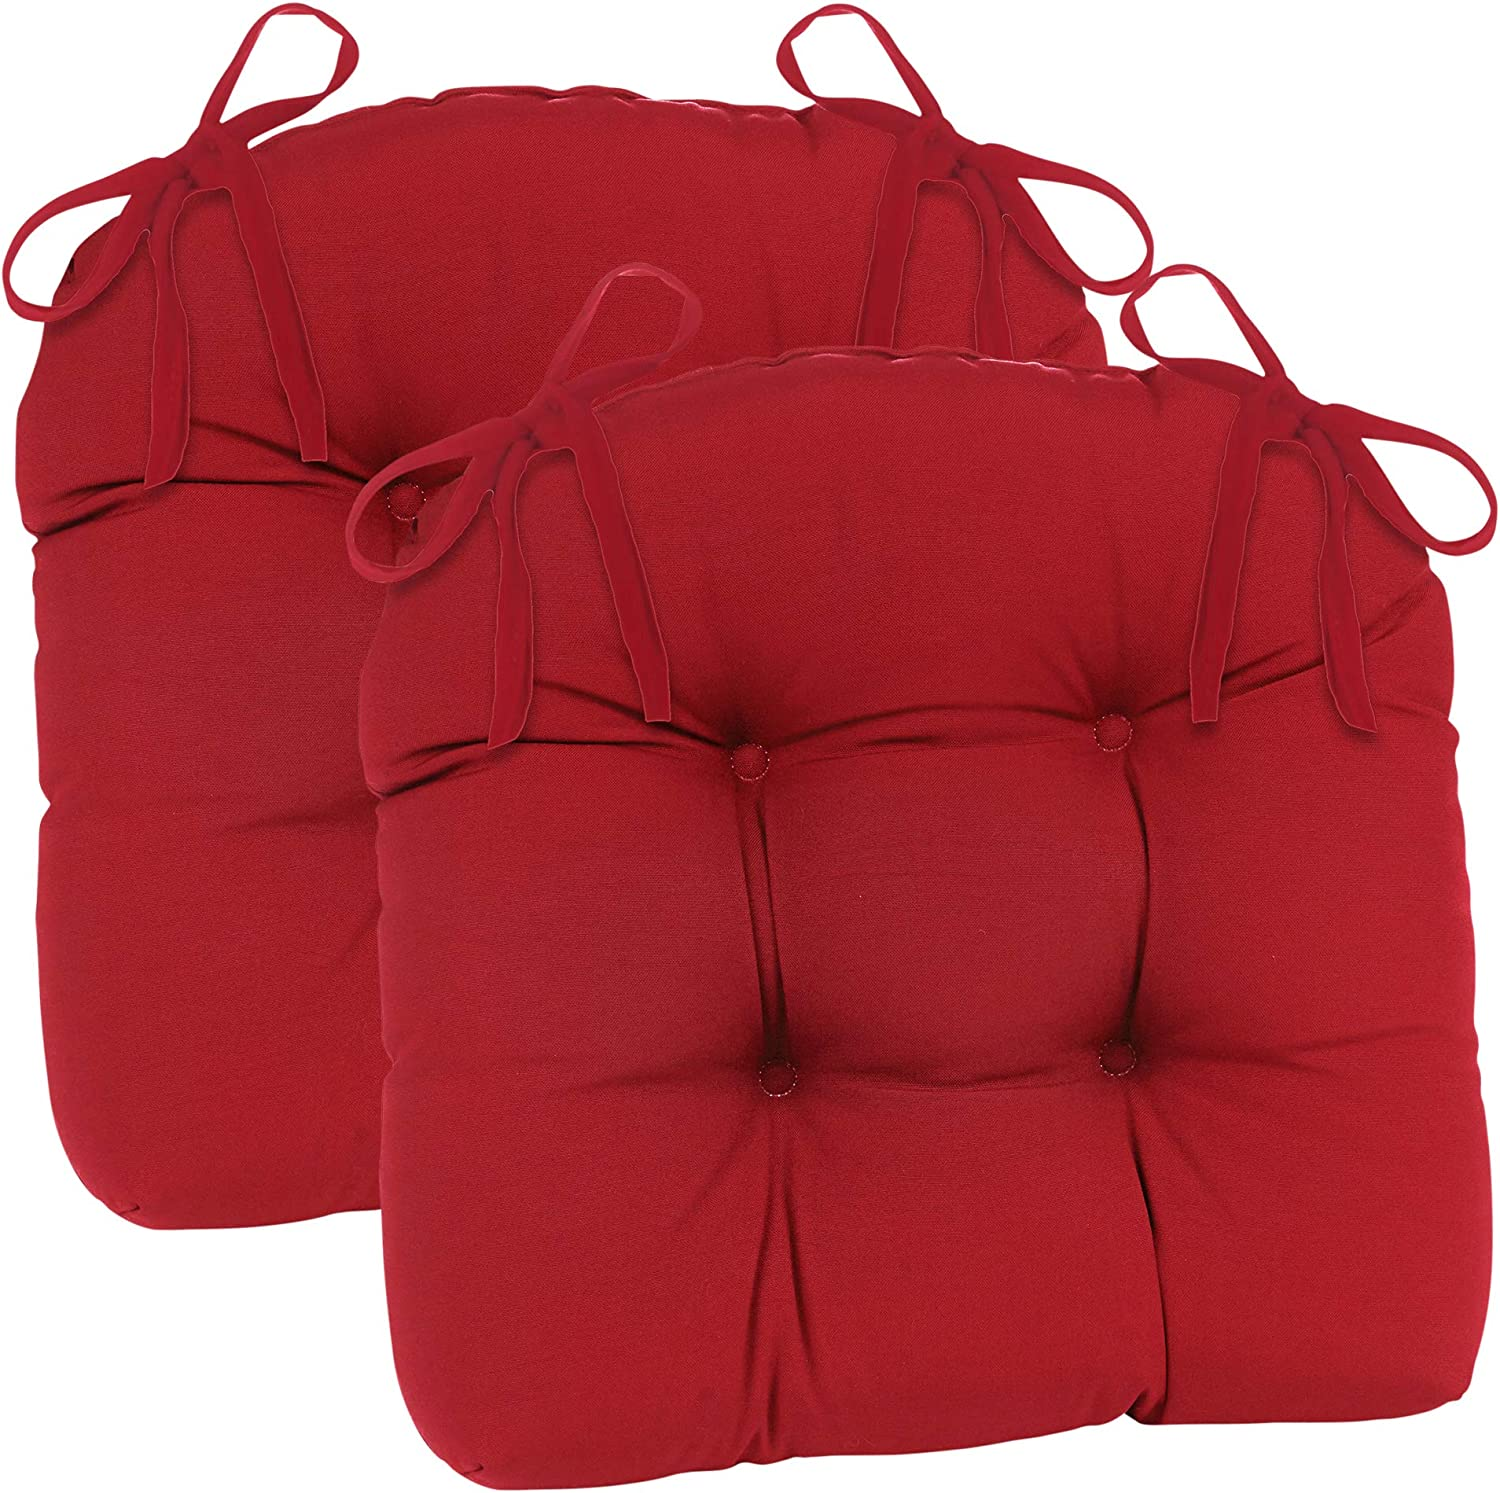 Klear Vu Wicker Solarium Indoor/Outdoor Tufted Chair Cushions, 2 Pack, Red 2 Count